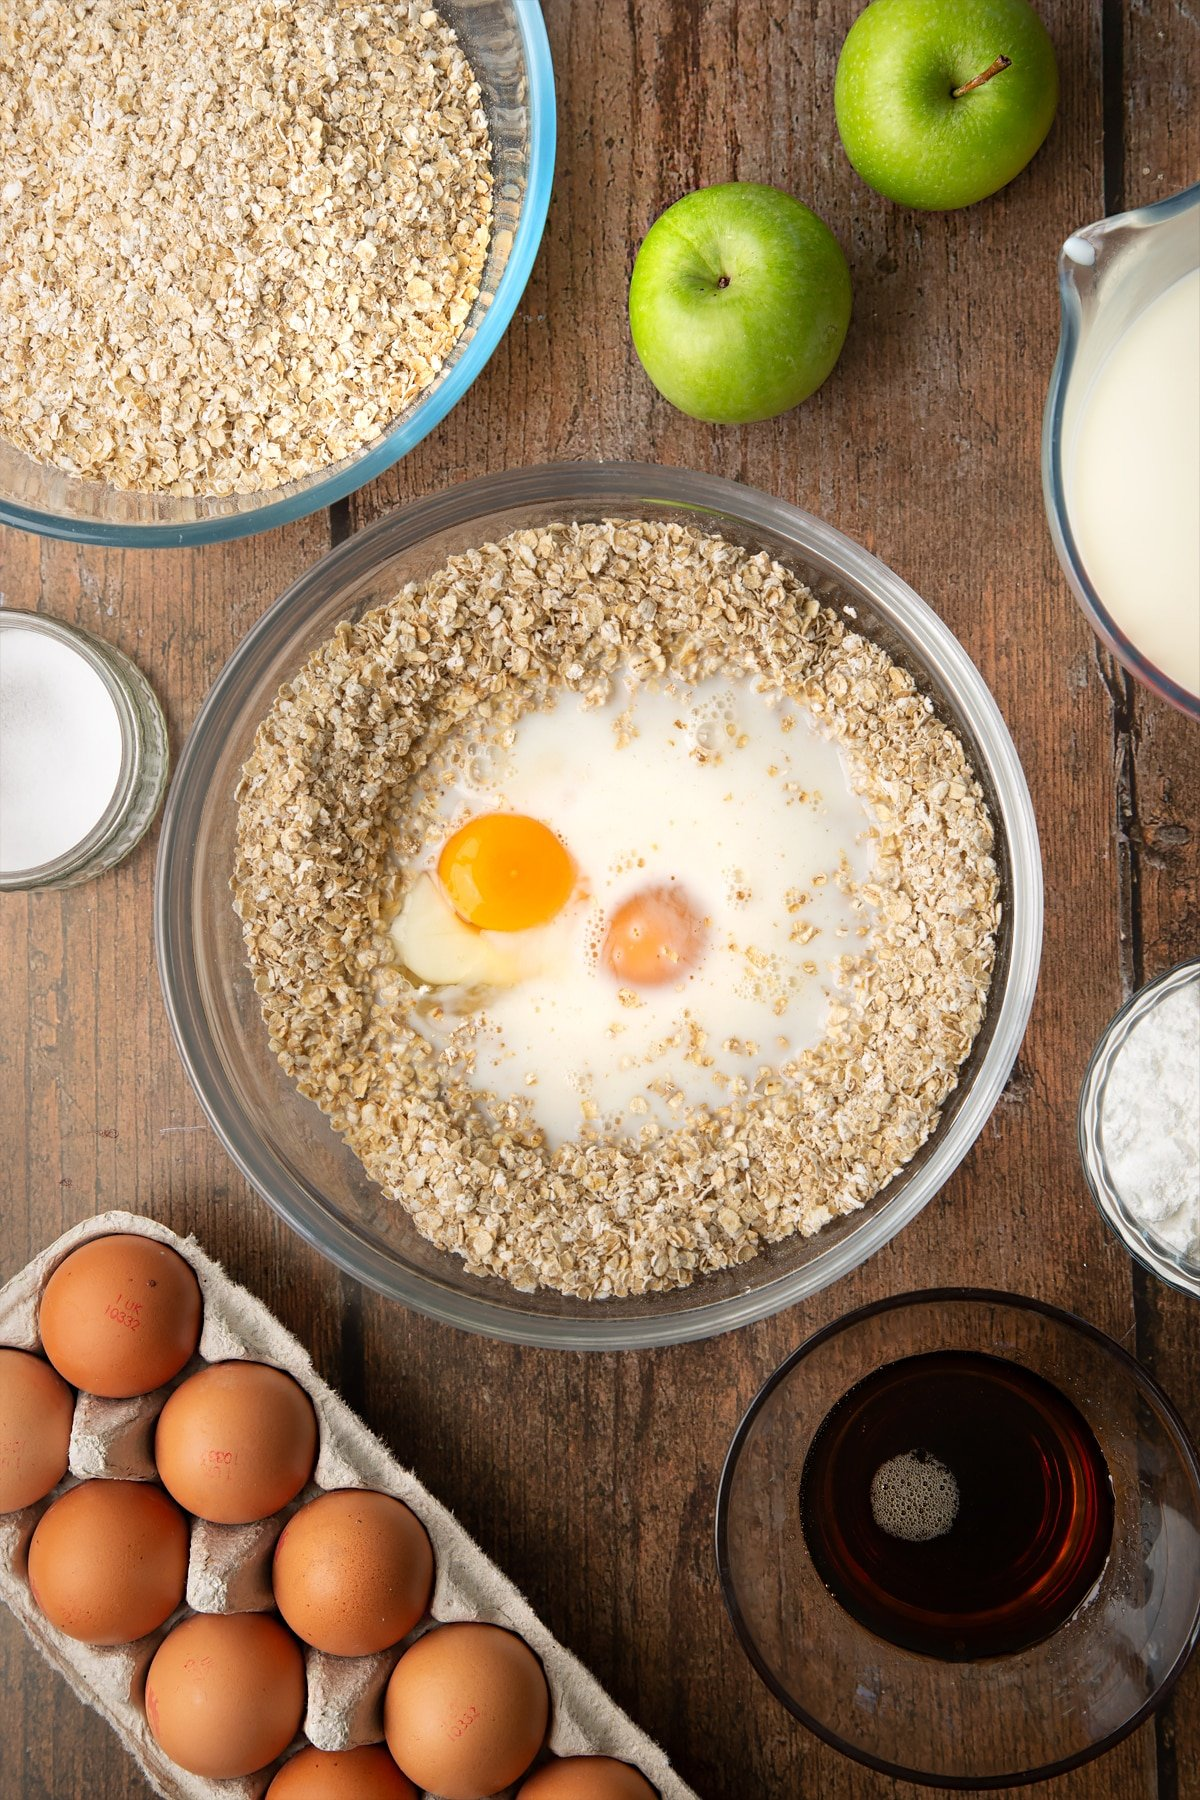 Oats, baking powder, salt, milk, eggs and maple syrup in a glass mixing bowl. Ingredients to make porridge squares surround the bowl.